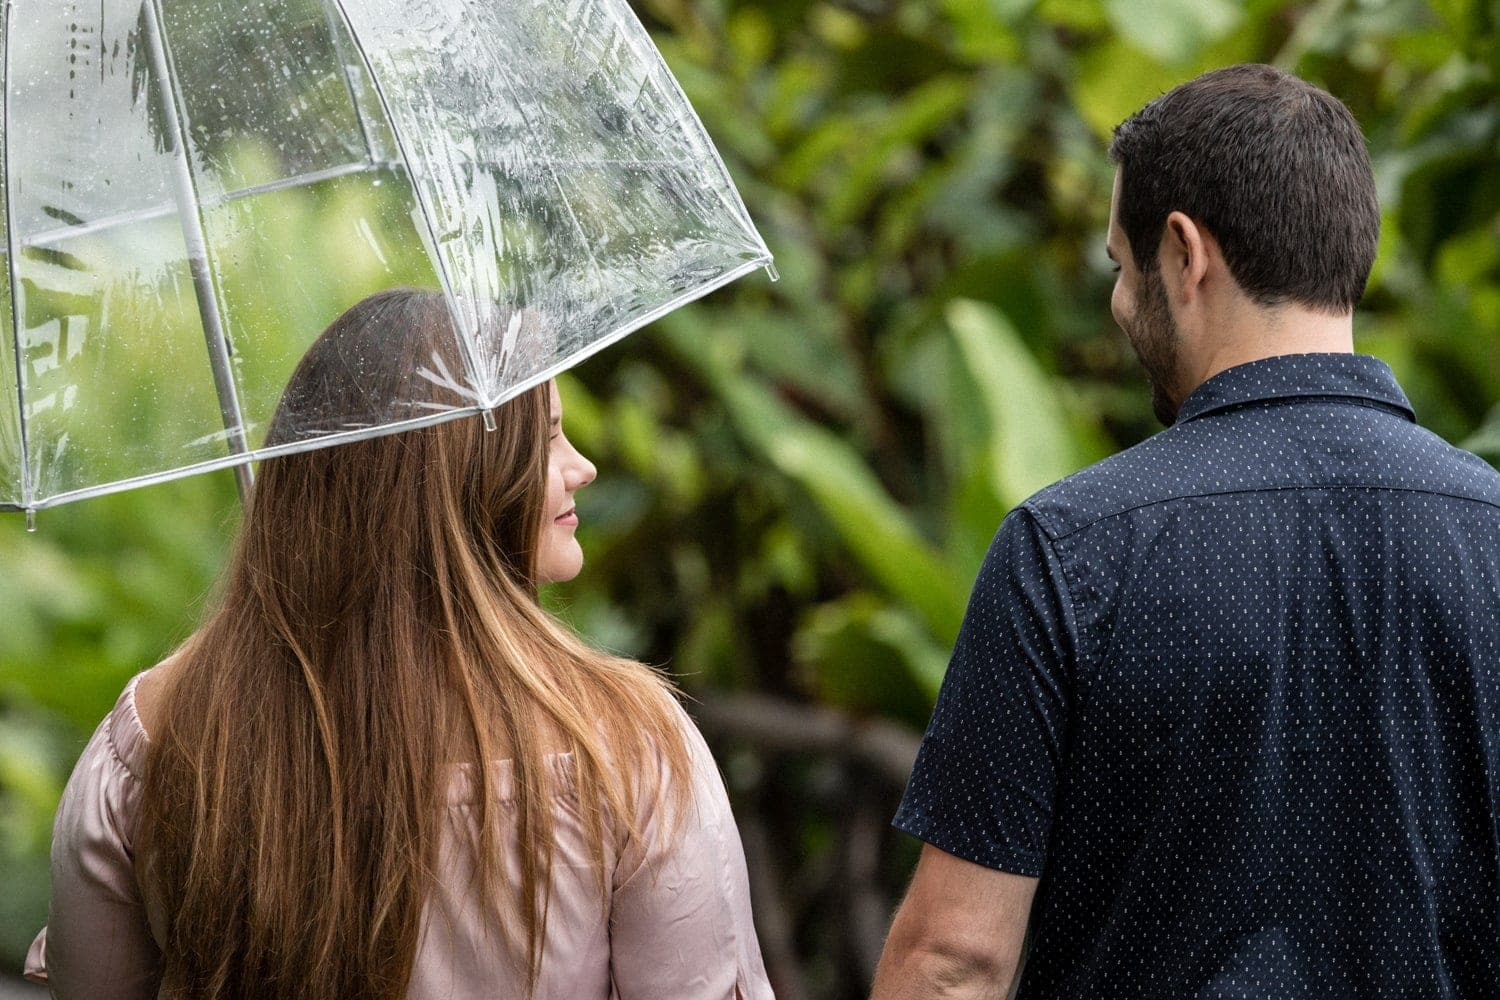 Fiancée holding umbrella looks at her love while walking in cloud forest.